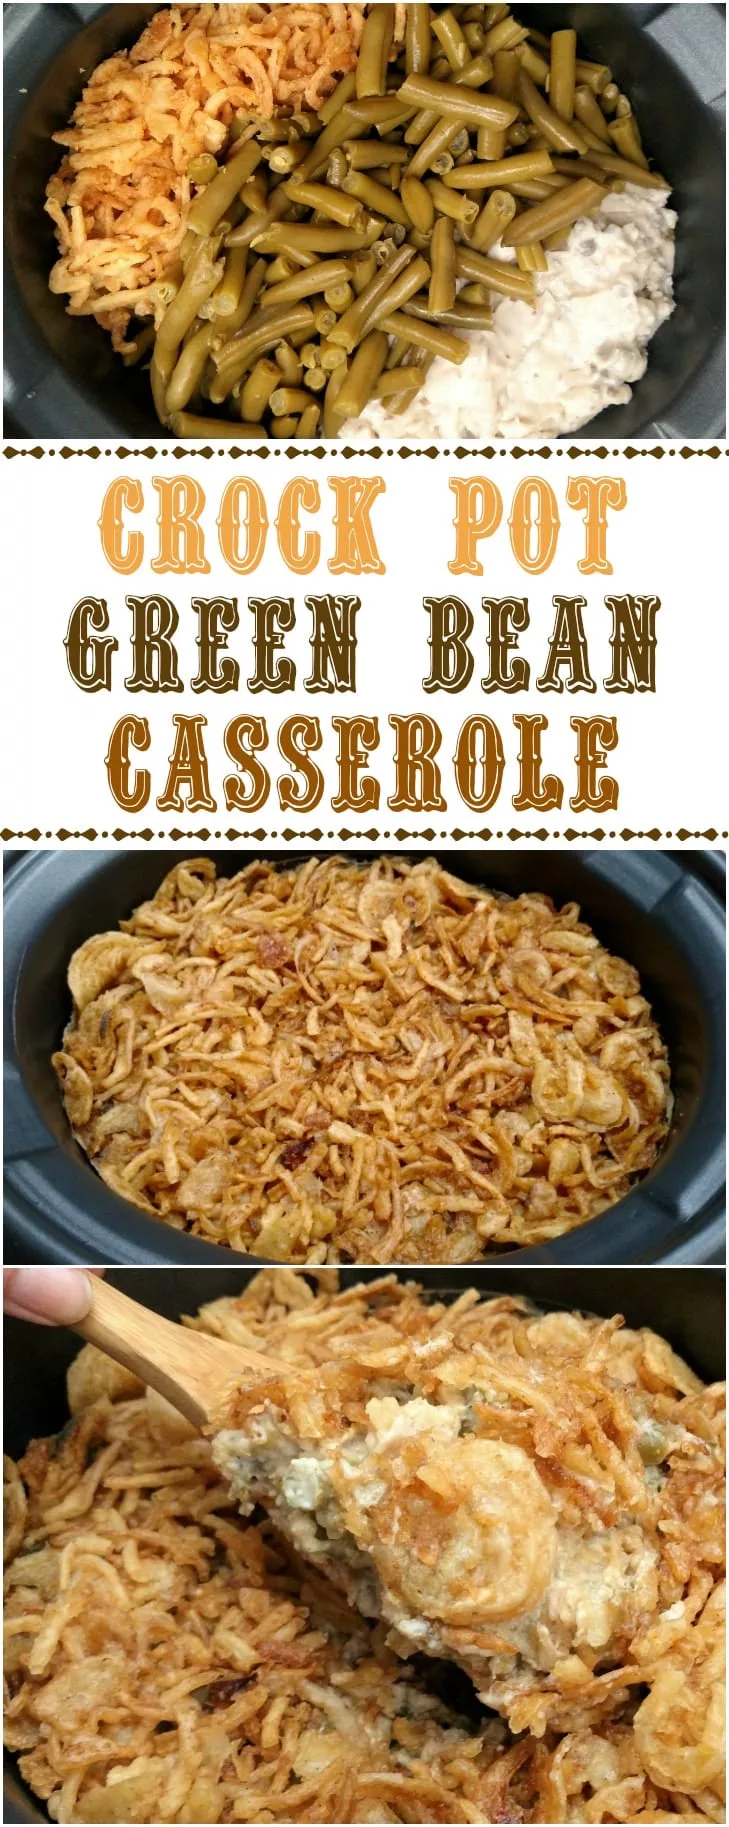 Crock Pot Green Bean Casserole | Slow Cooker Kitchen #greenbeancasserole